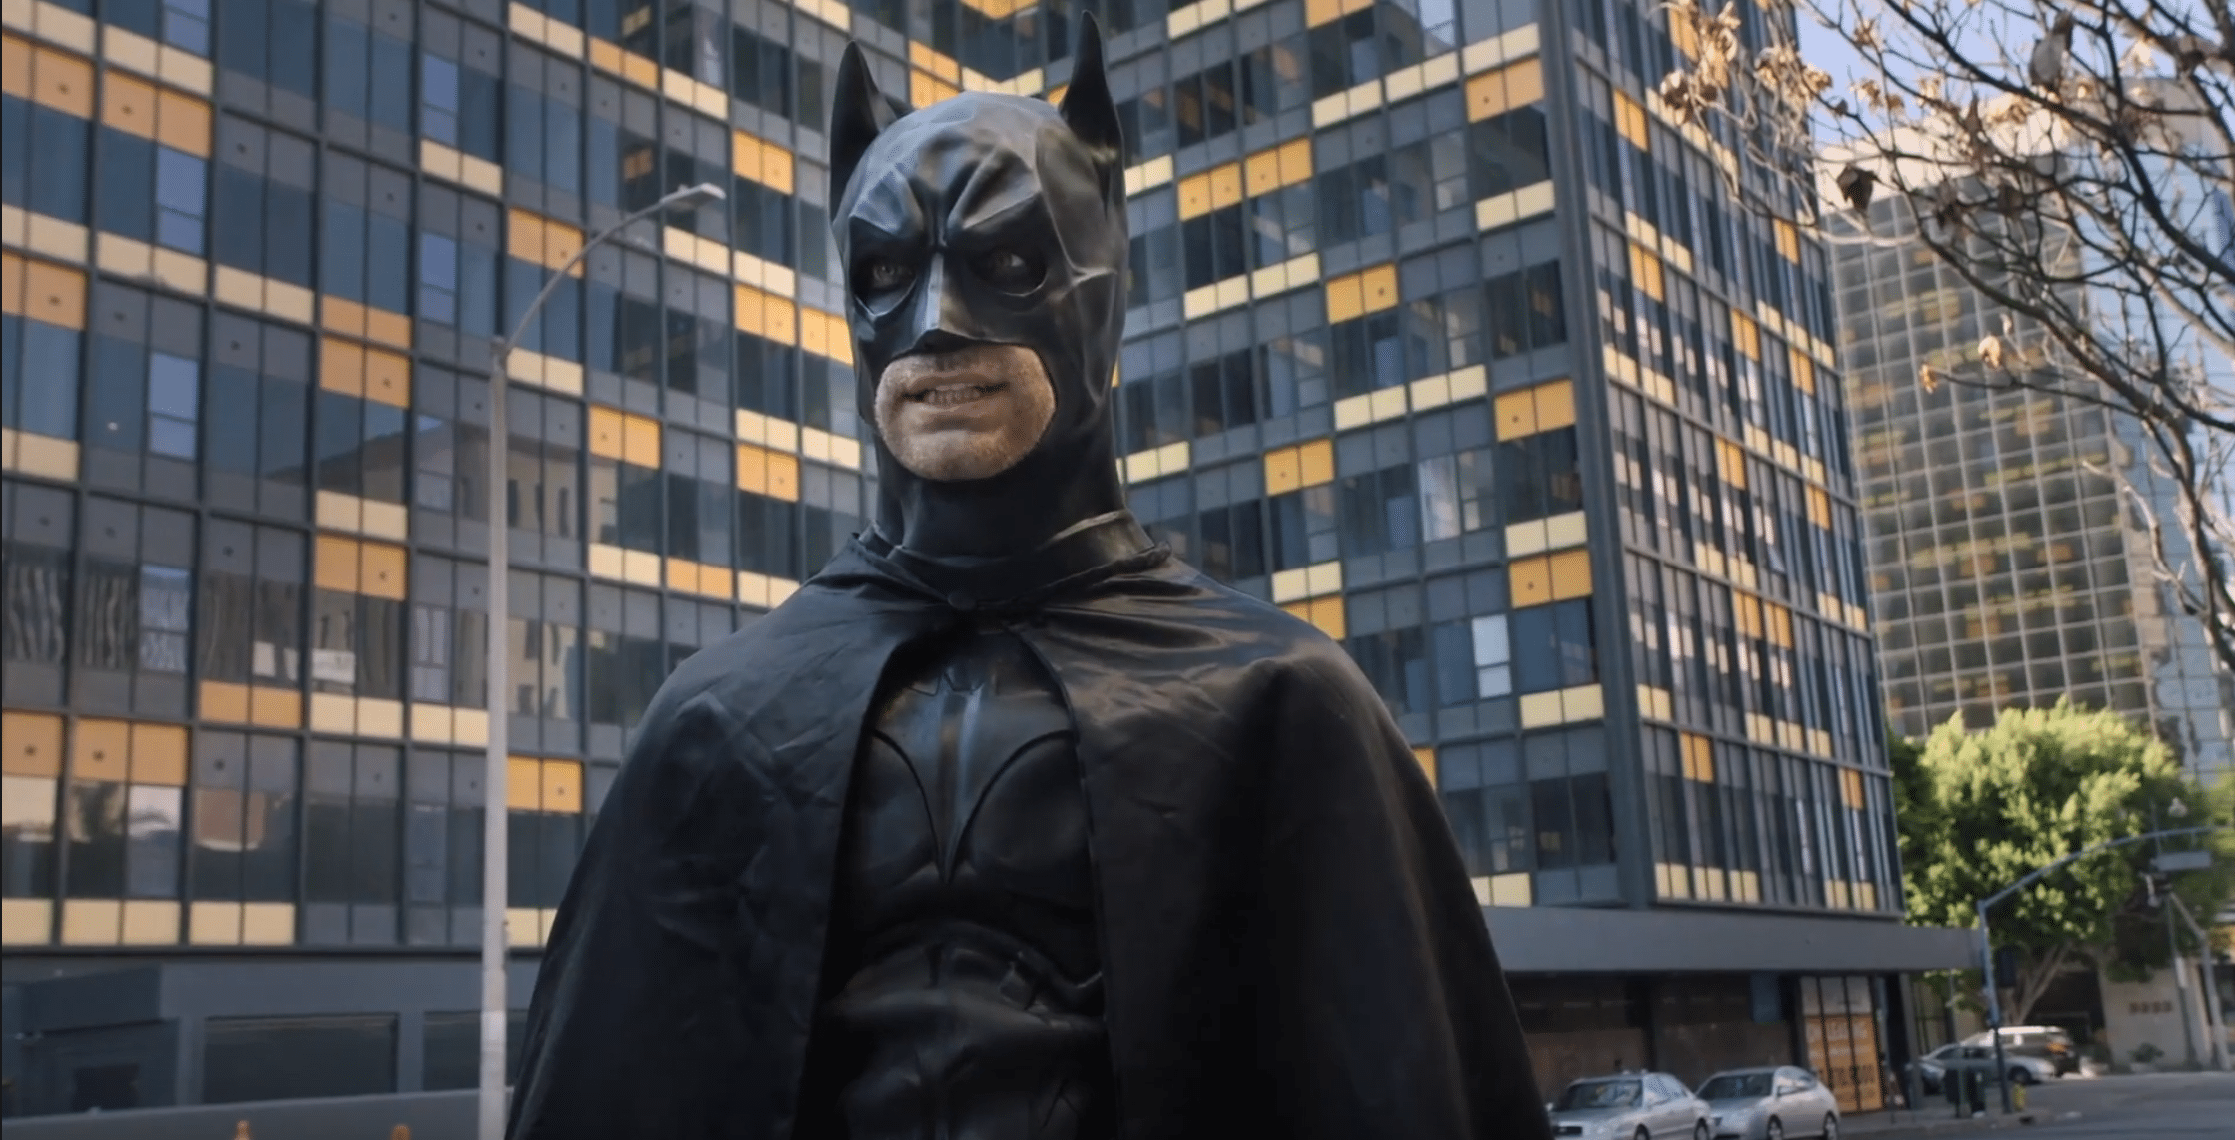 Agents of SHIELD's Jeff Ward Dons The Batsuit For Charity